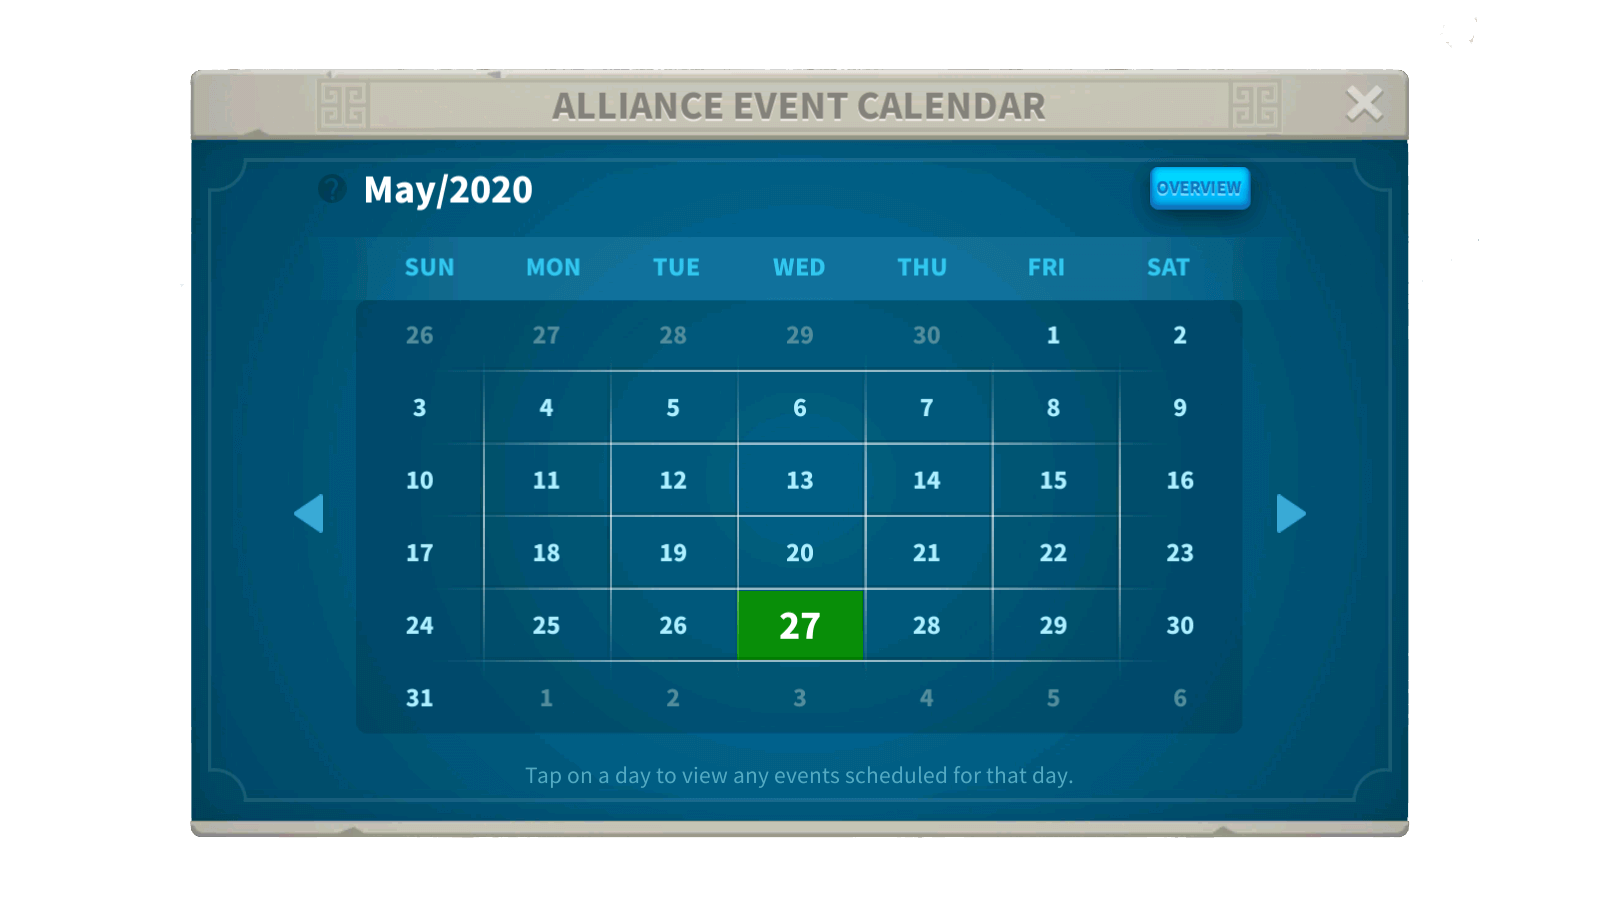 Alliance Event Calendar